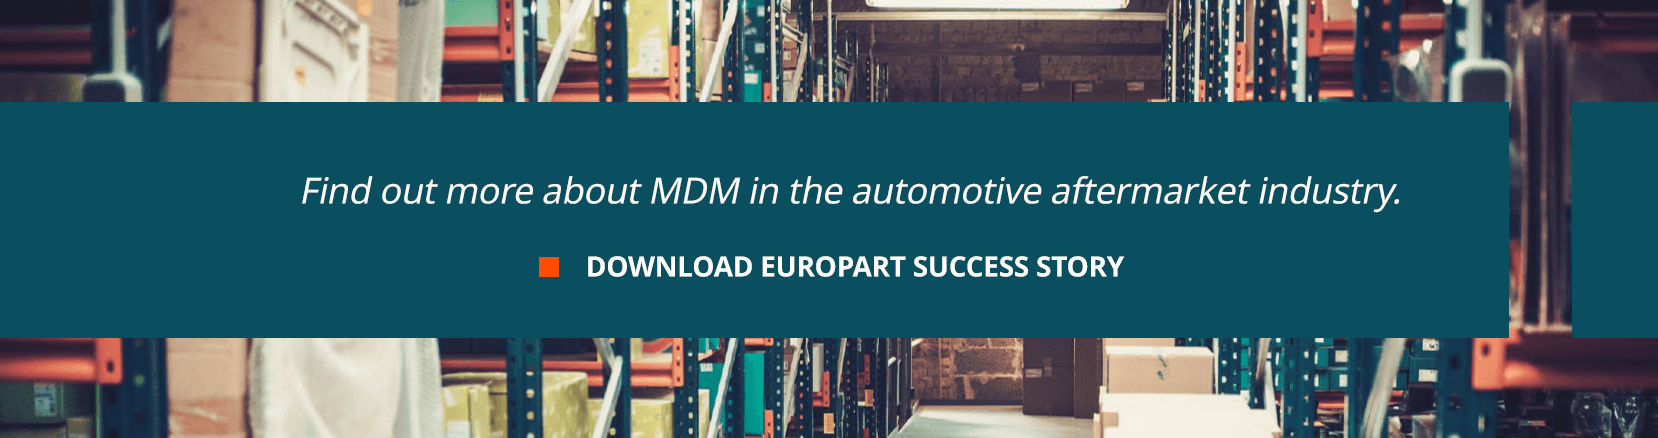 Find out more about MDM in the automotive aftermarket industry